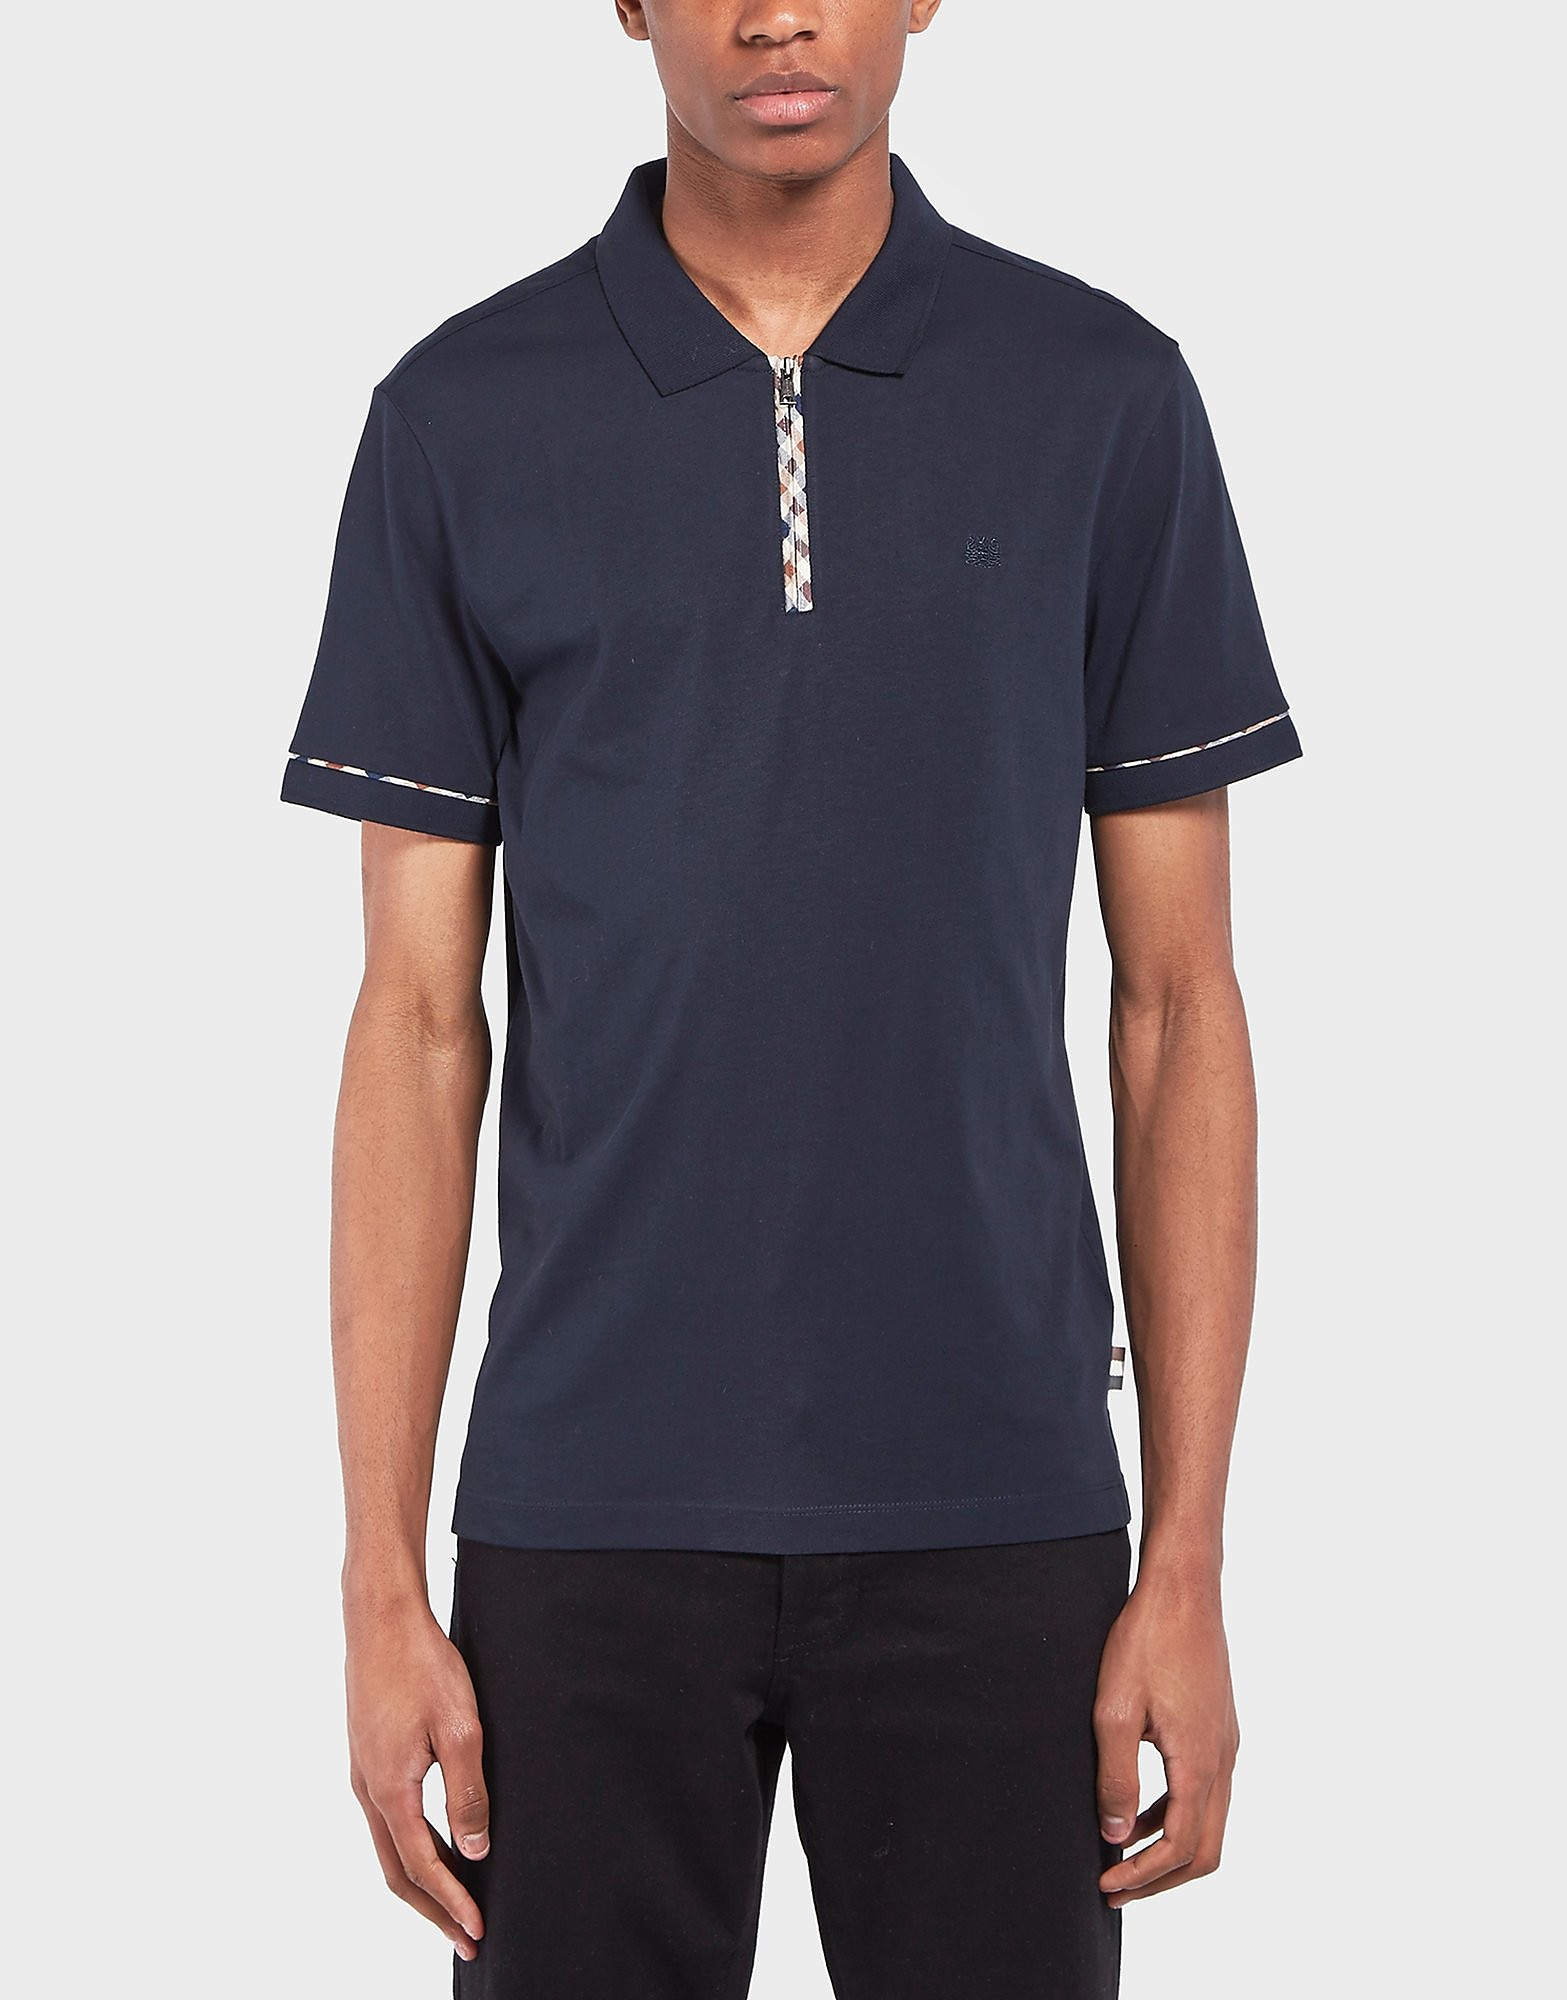 Aquascutum Trim Short Sleeve Polo Shirt - Online Exclusive